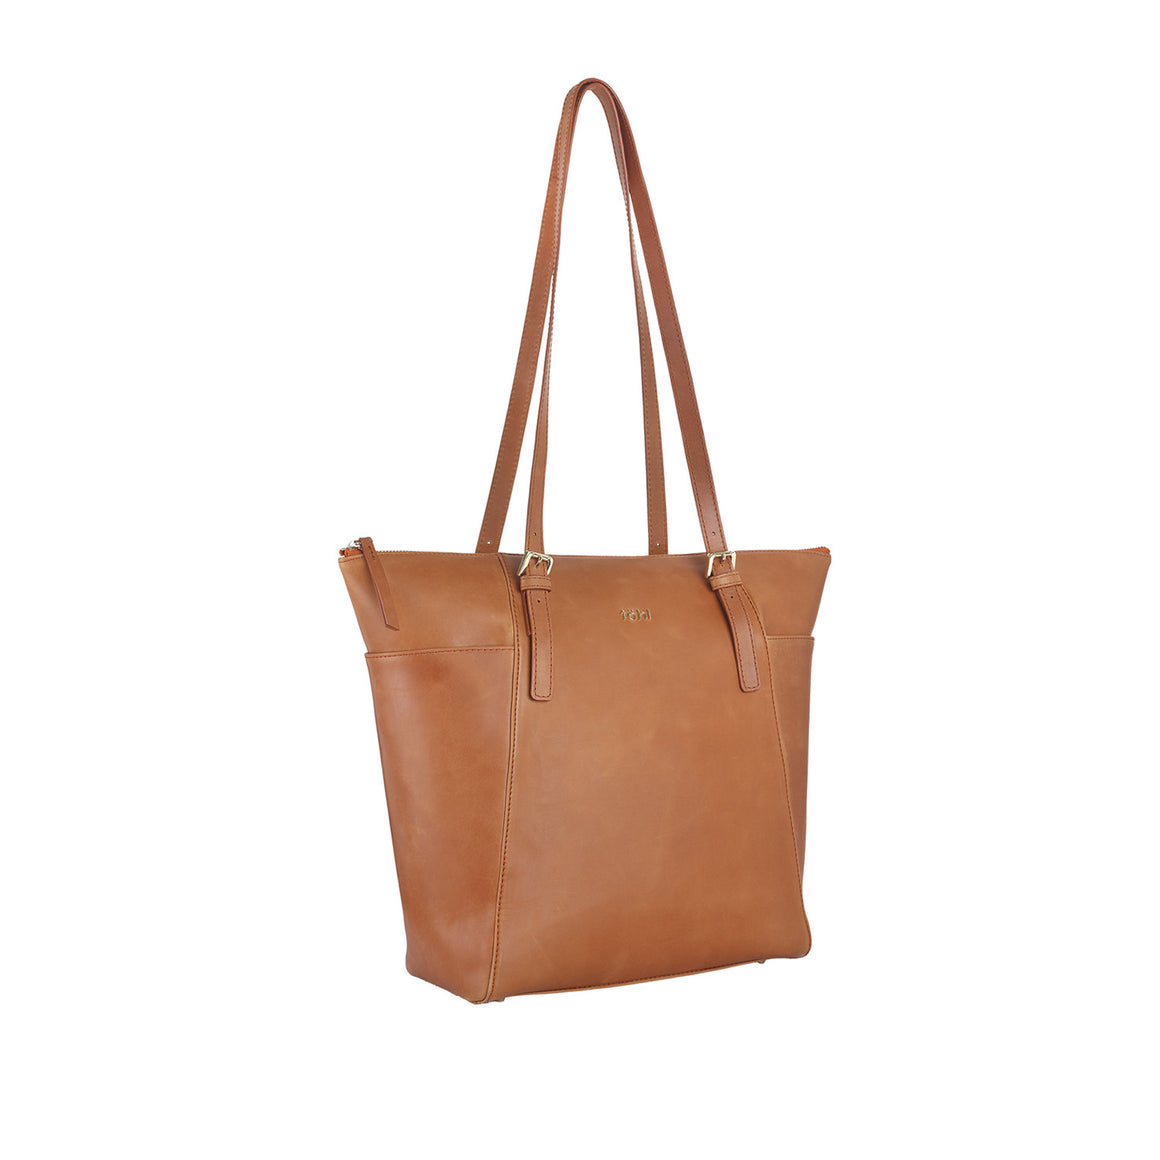 TT 0001 - TOHL MERCER WOMEN'S TOTE BAG - TAN